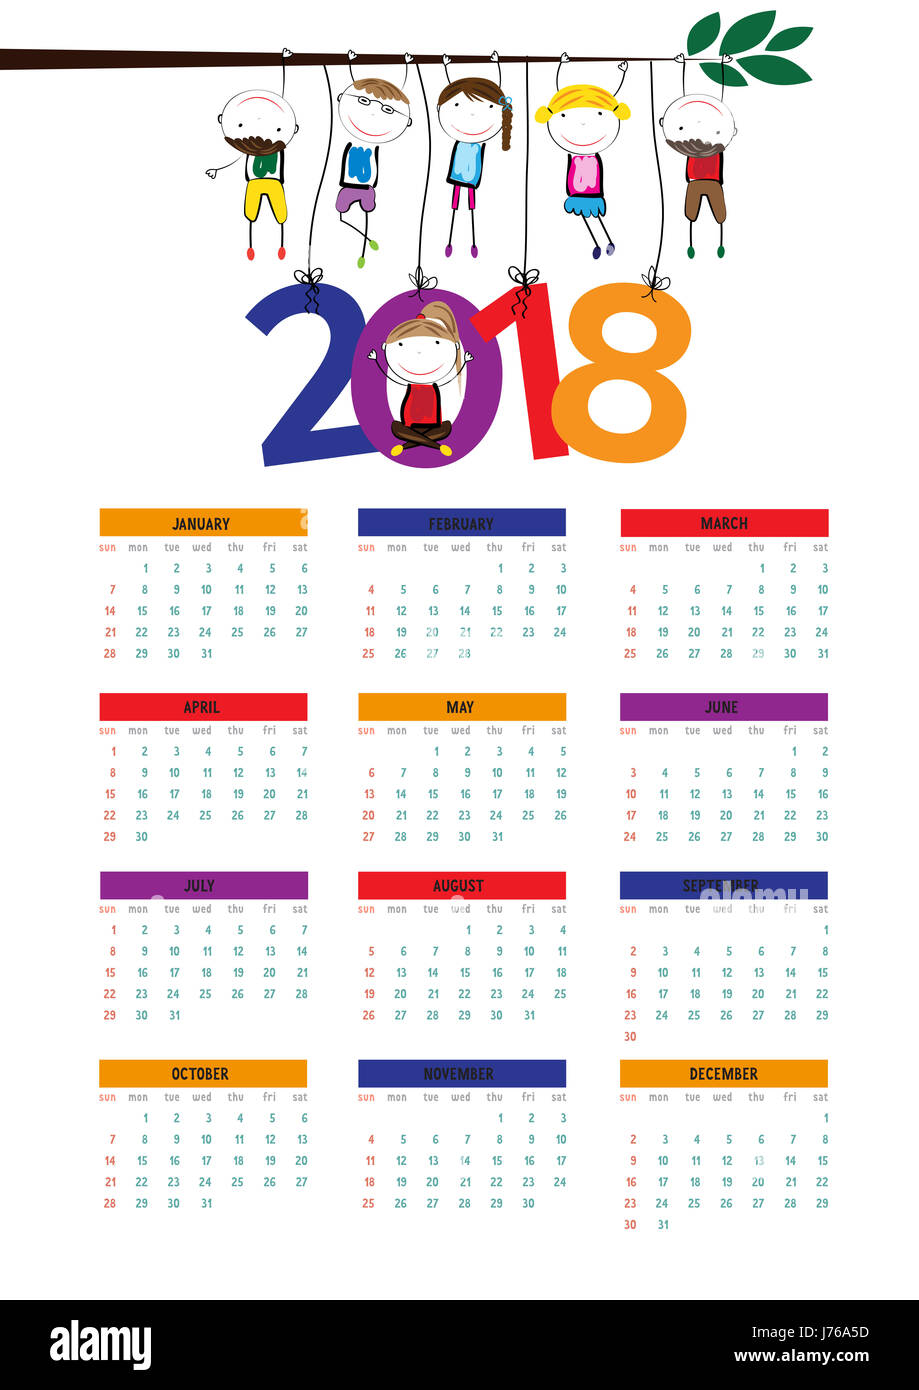 Cute Calendar For The New Year 2018 Stock Photo 142125241 Alamy